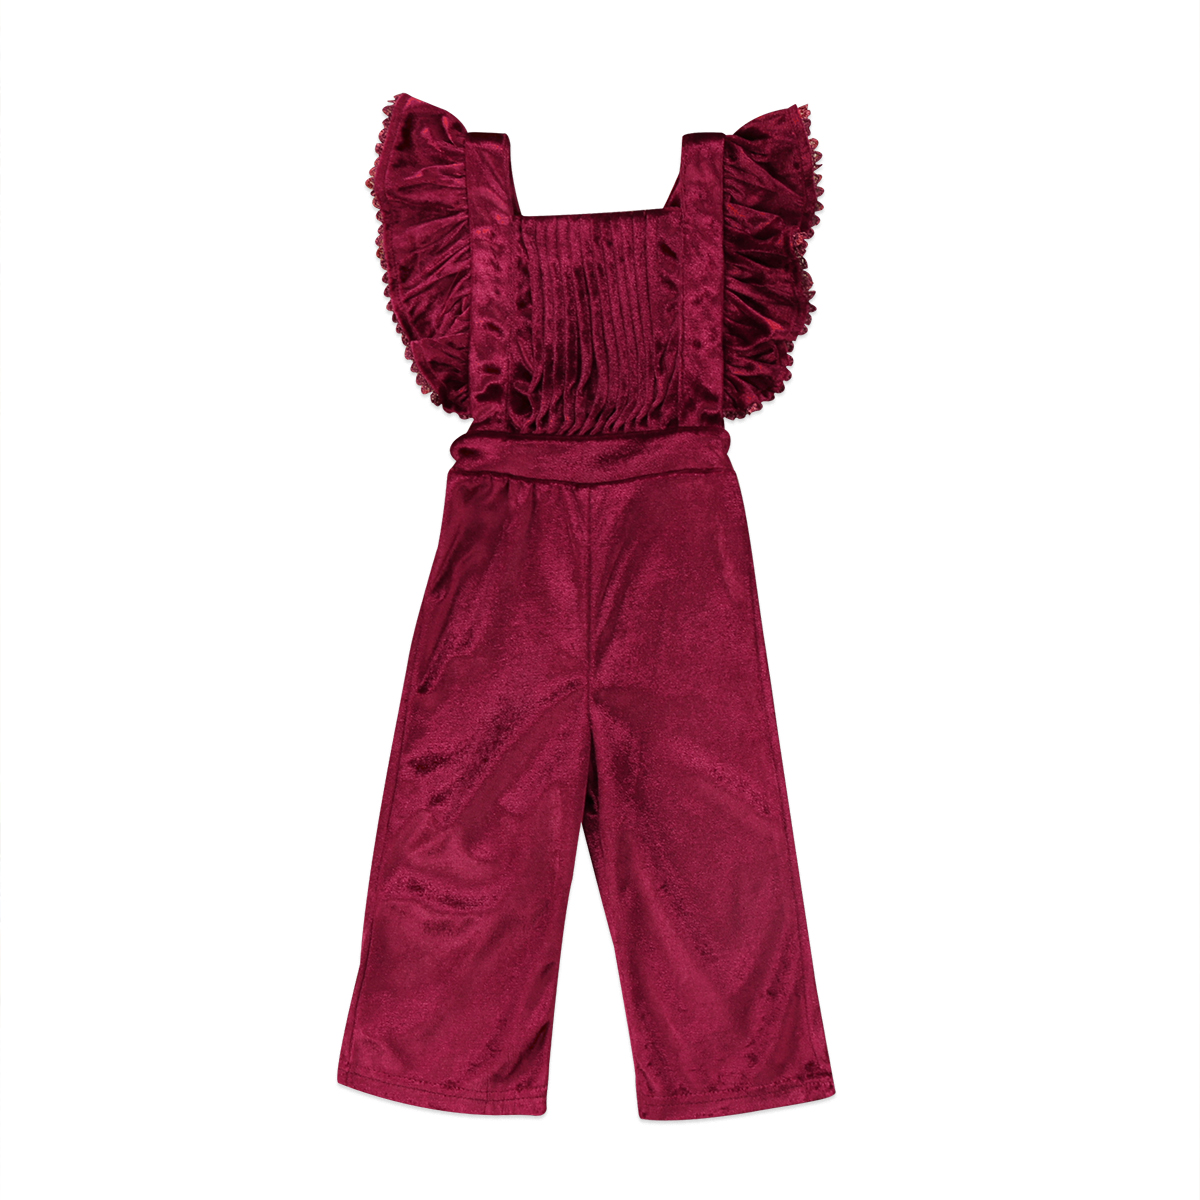 Fashion Toddler Kids Girls Velvet Flying Sleeves Long   Romper   Bib Pants Backless Jumpsuit Outfit Clothes